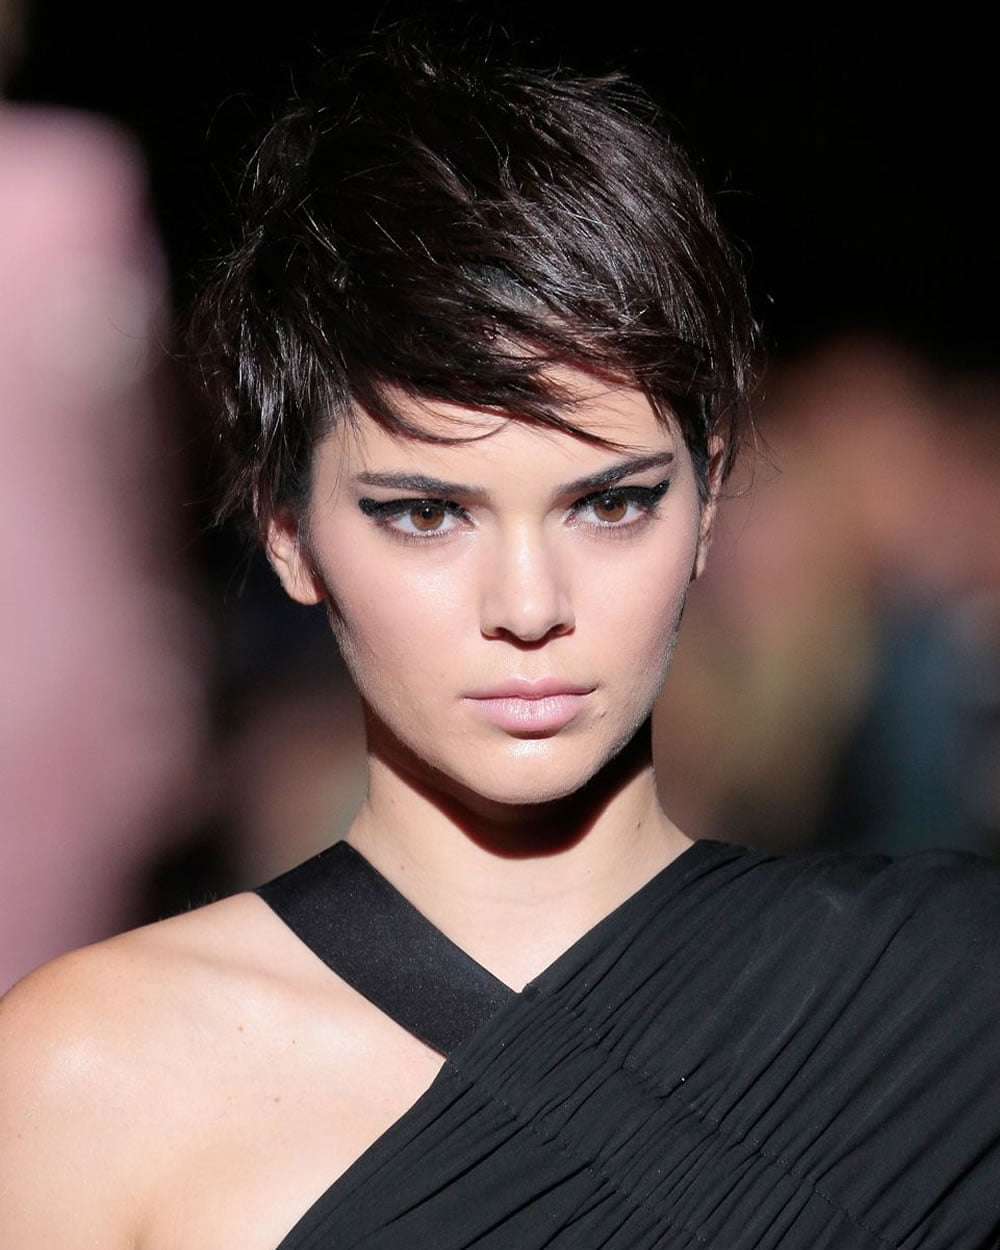 21 Trendy Short Haircut Images And Pixie Hairstyles You Ll